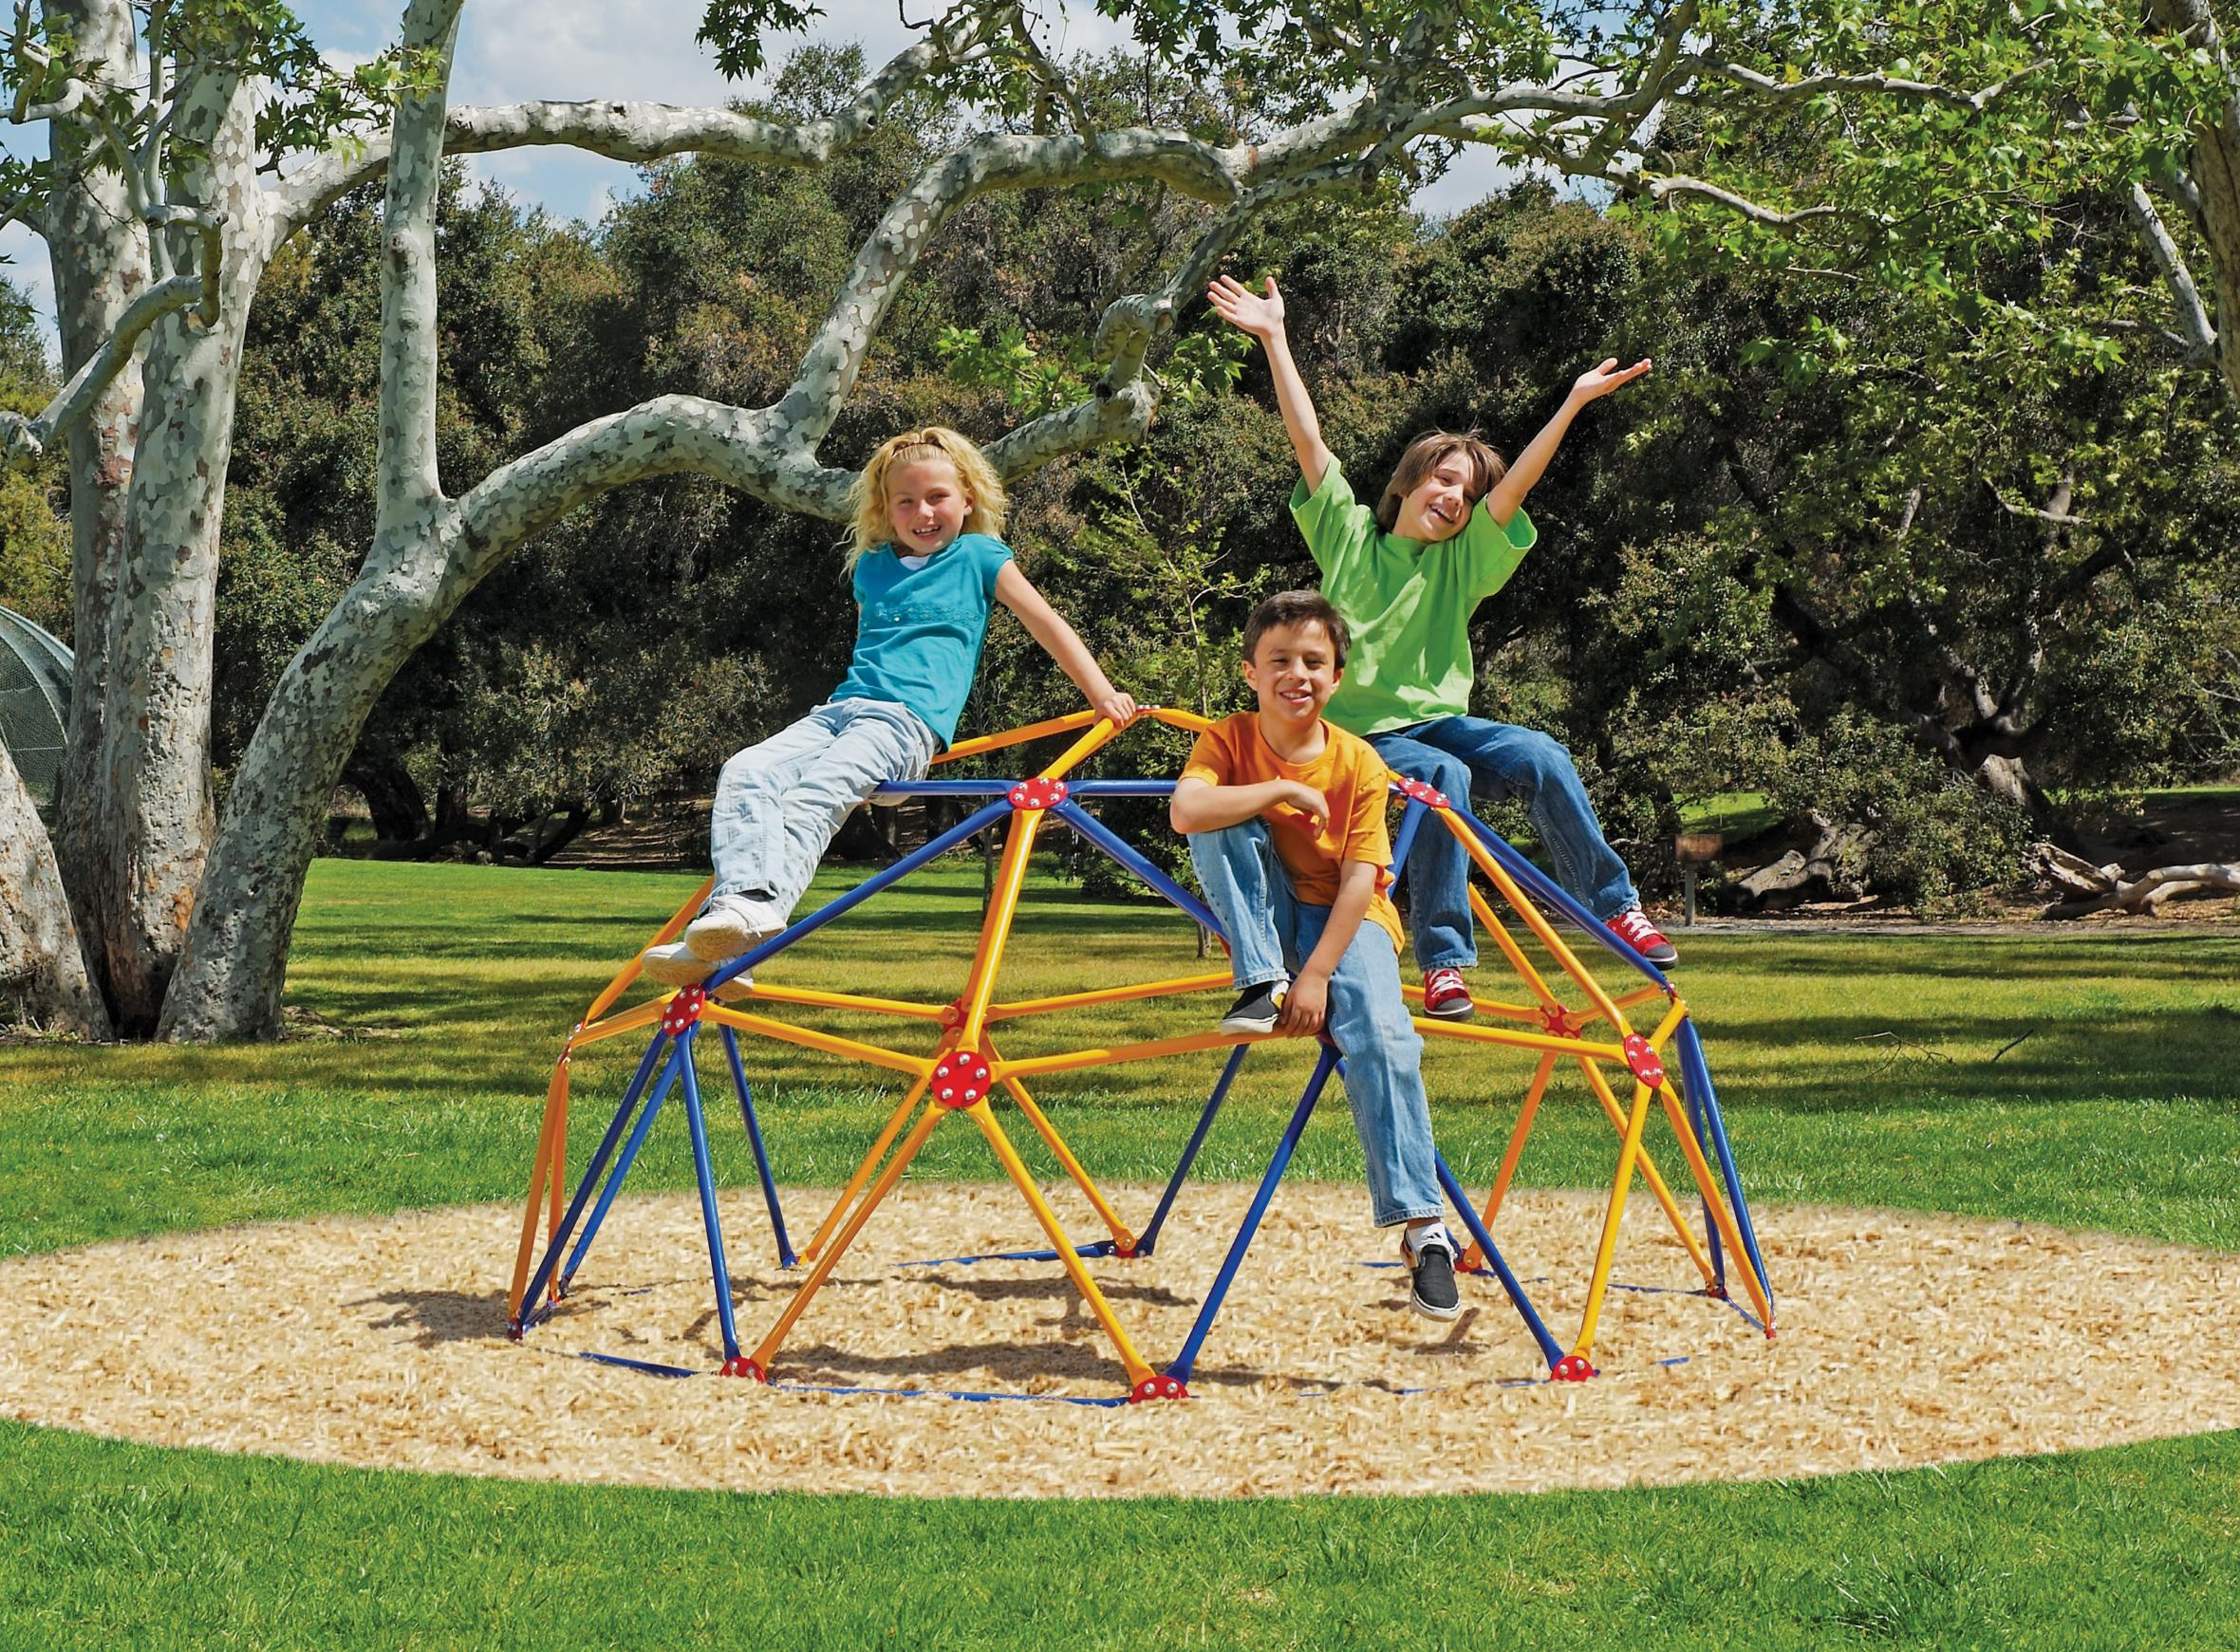 Amazon Easy Outdoor Space Dome Climber – Rust and UV